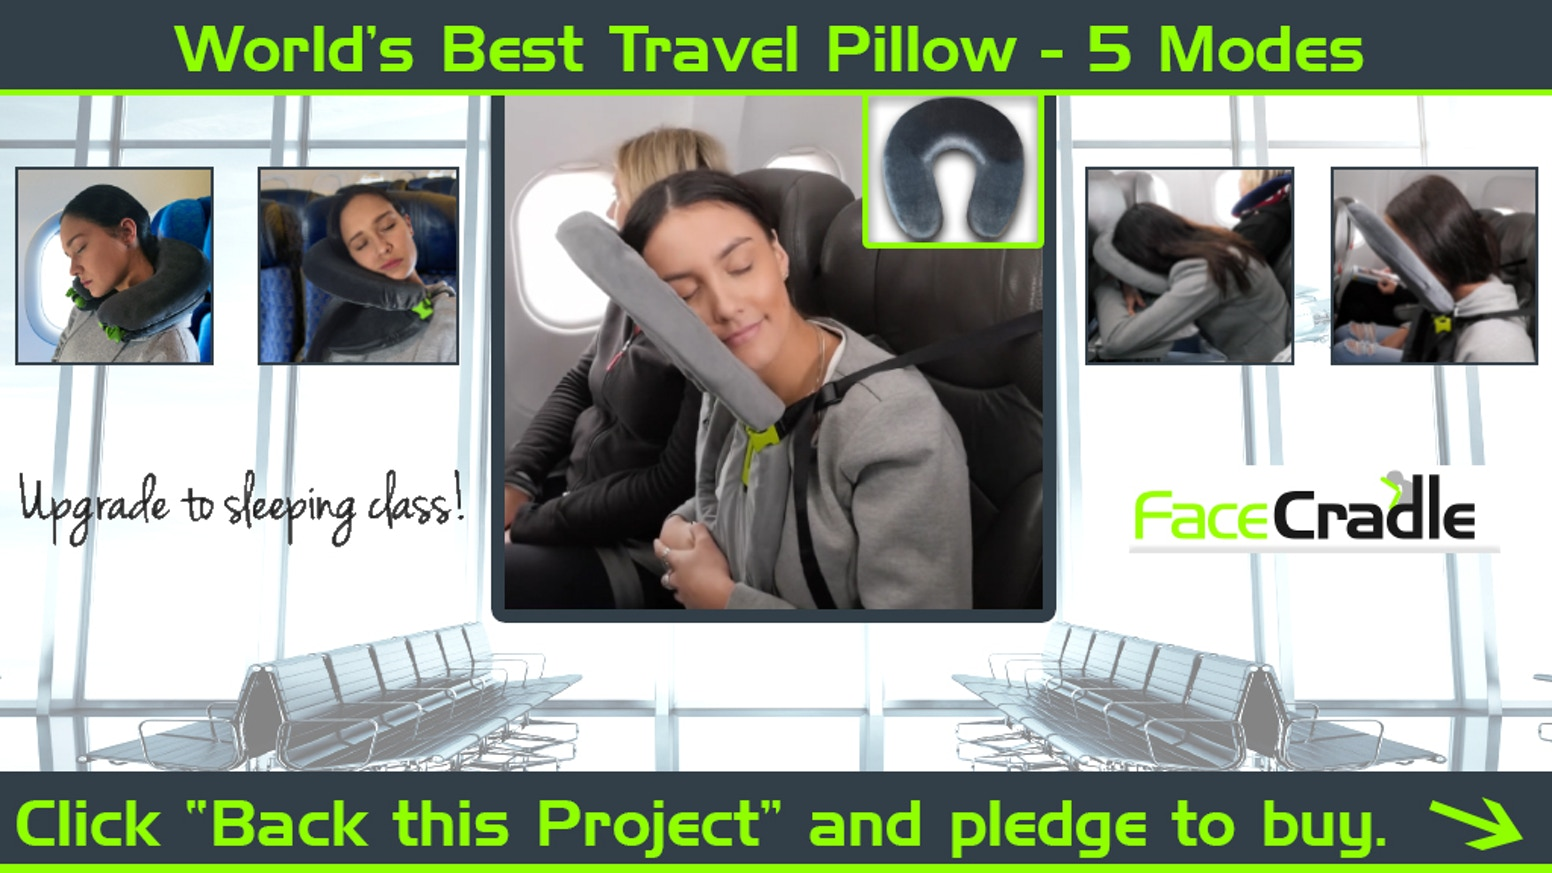 """Upgrade to Sleeping Class"" - FaceCradle Travel Pillow!   With 5 comfort modes, 4 more than a regular neck pillow, now you can sleep!"